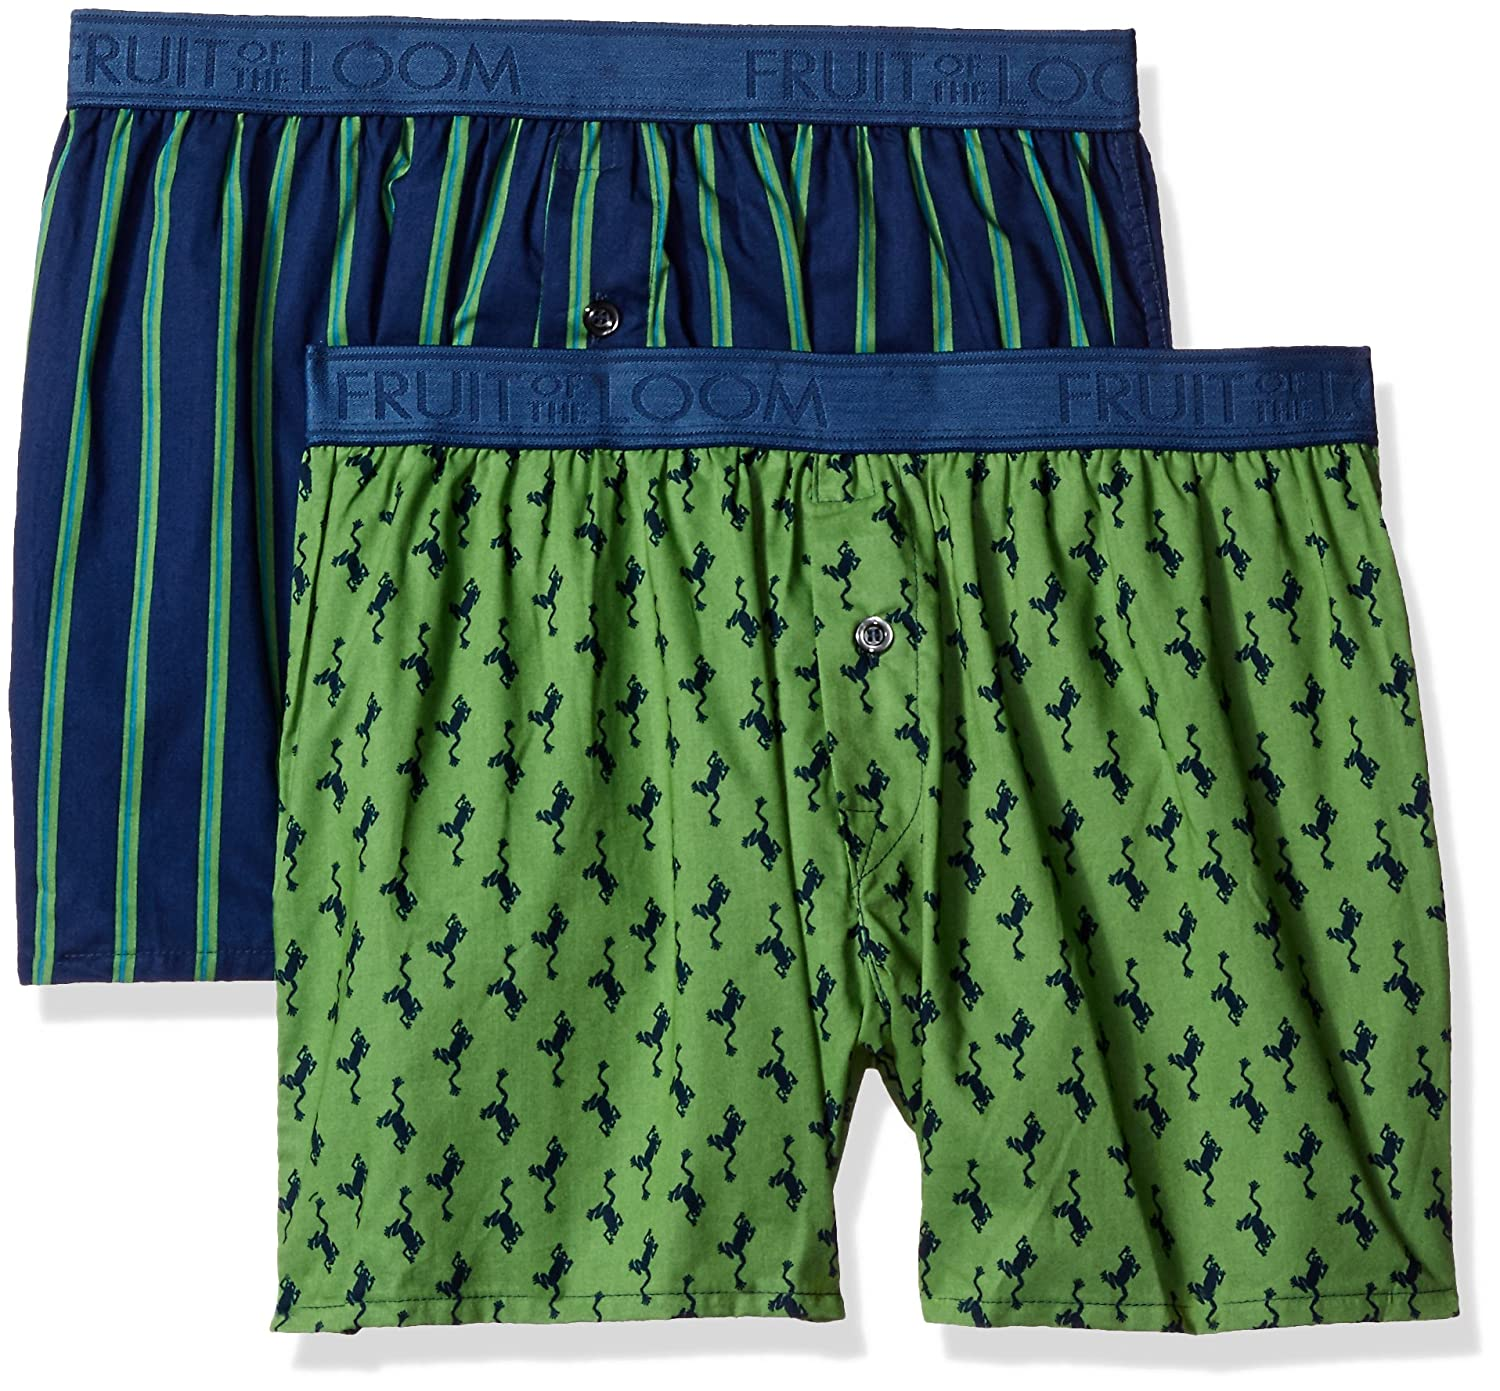 Fruit of the Loom Mens Cotton Stretch Boxer -Dup Pack of 2